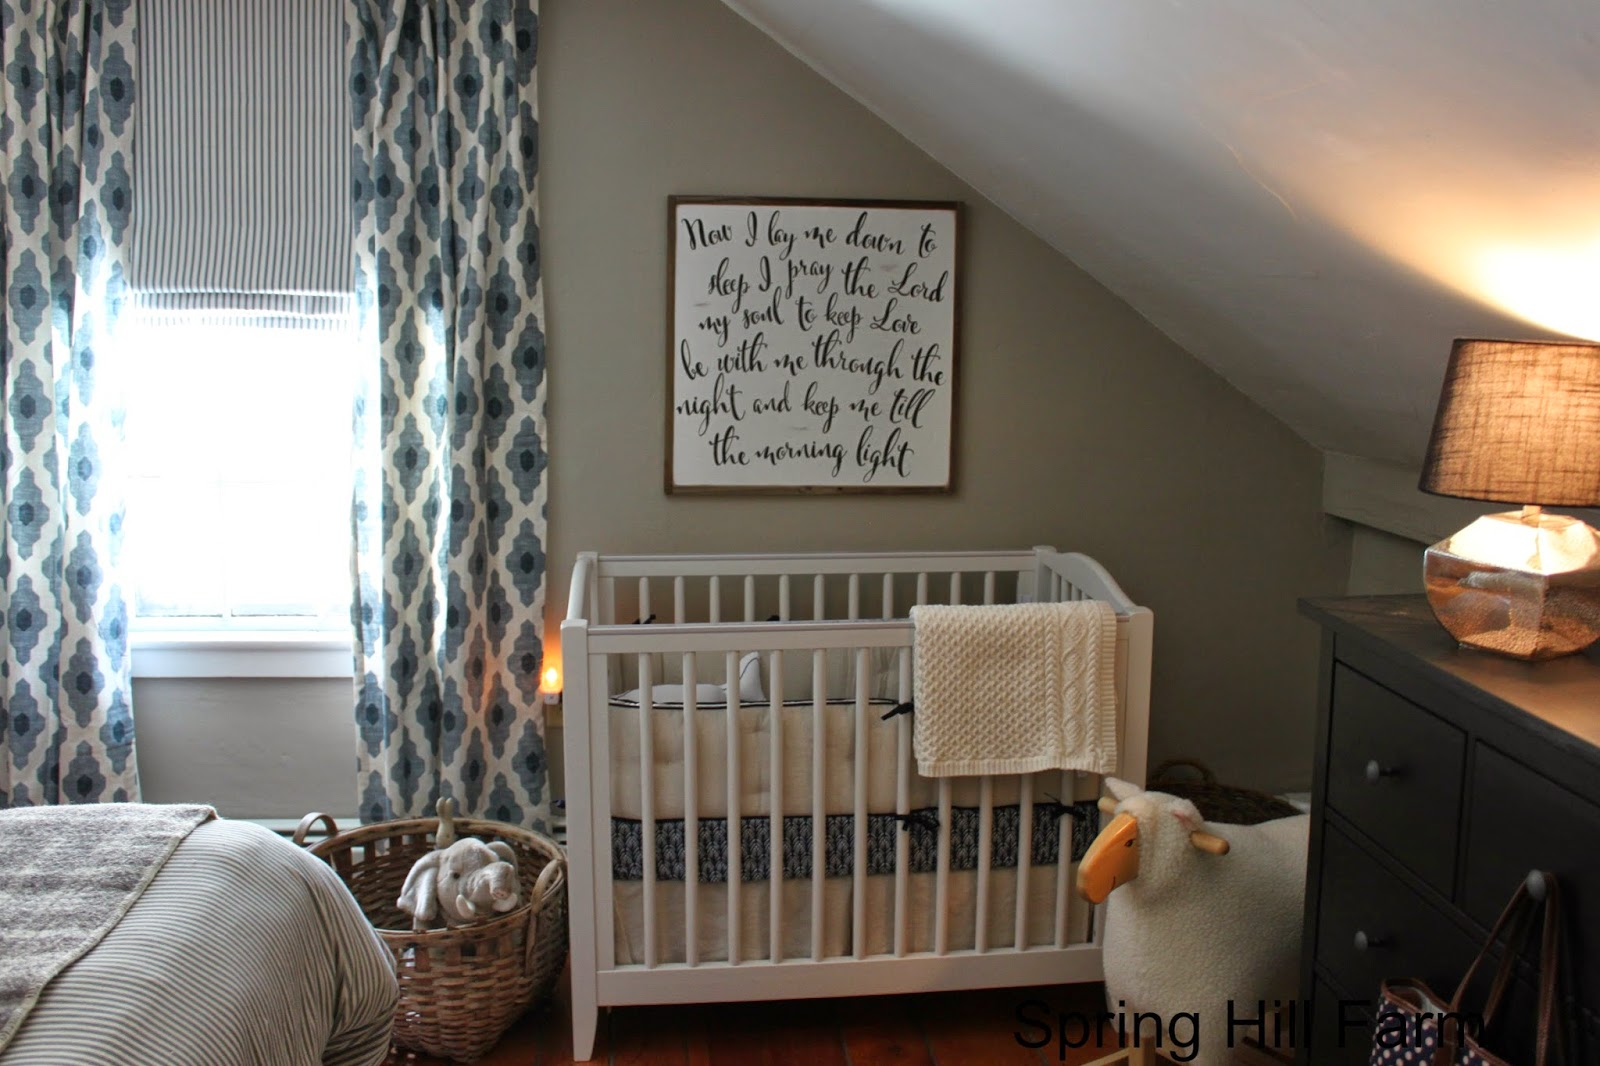 Spring hill farm Master bedroom with a crib